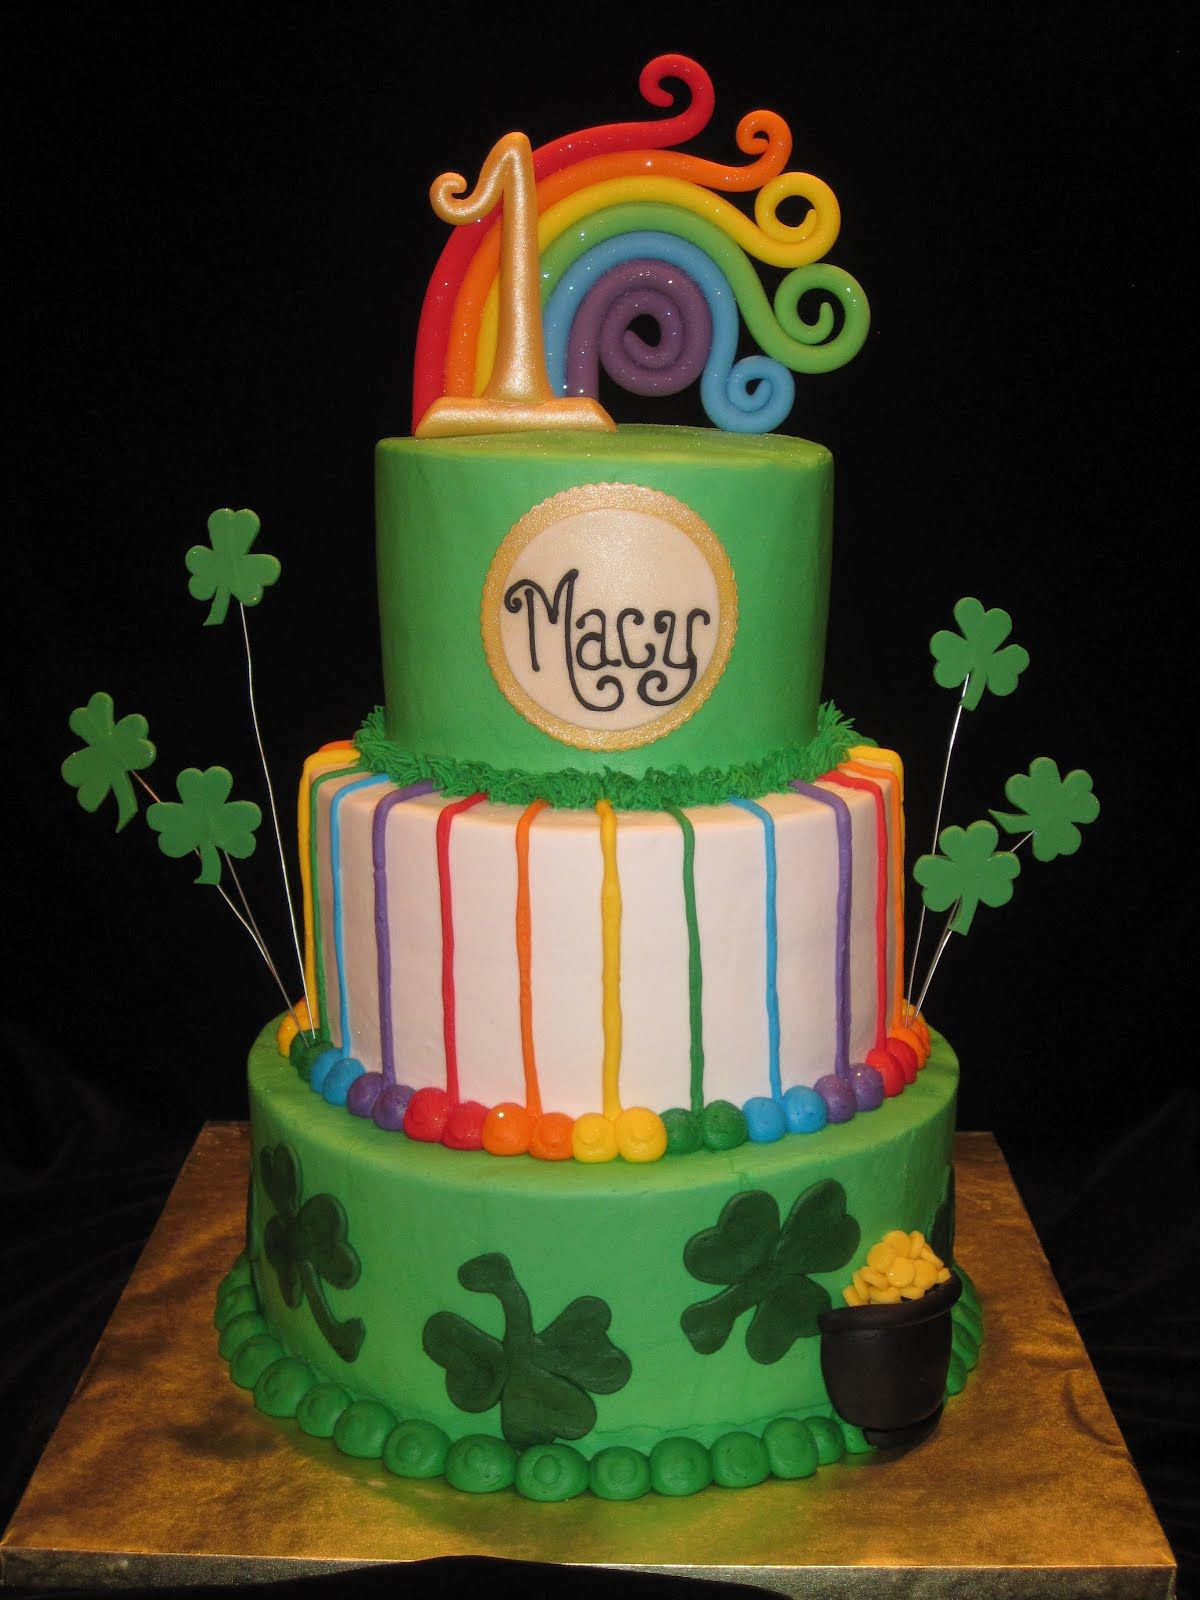 Pin by Felicia Lauderdale on Feta St patricks day cakes